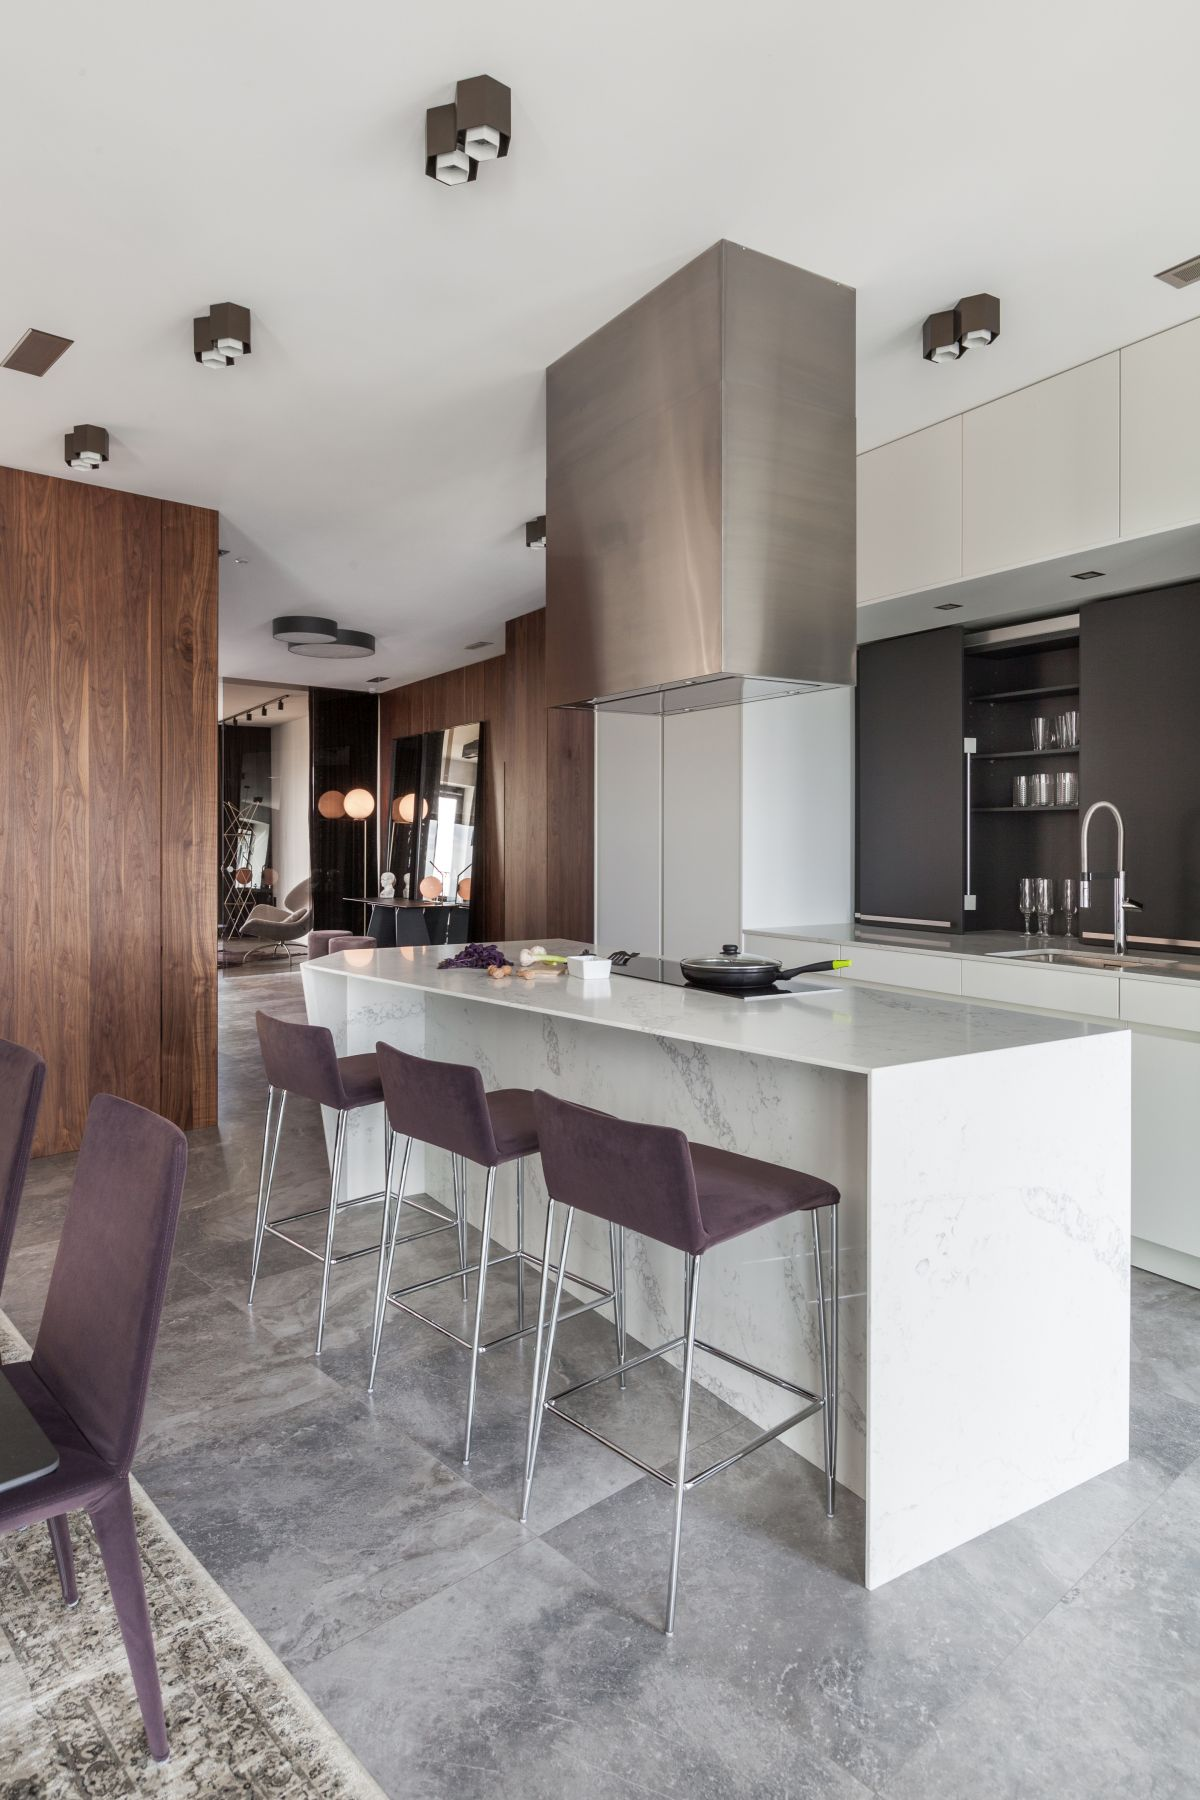 1572340907 904 posh apartment in minsk gets a complete remodel - Posh Apartment in Minsk Gets A Complete Remodel